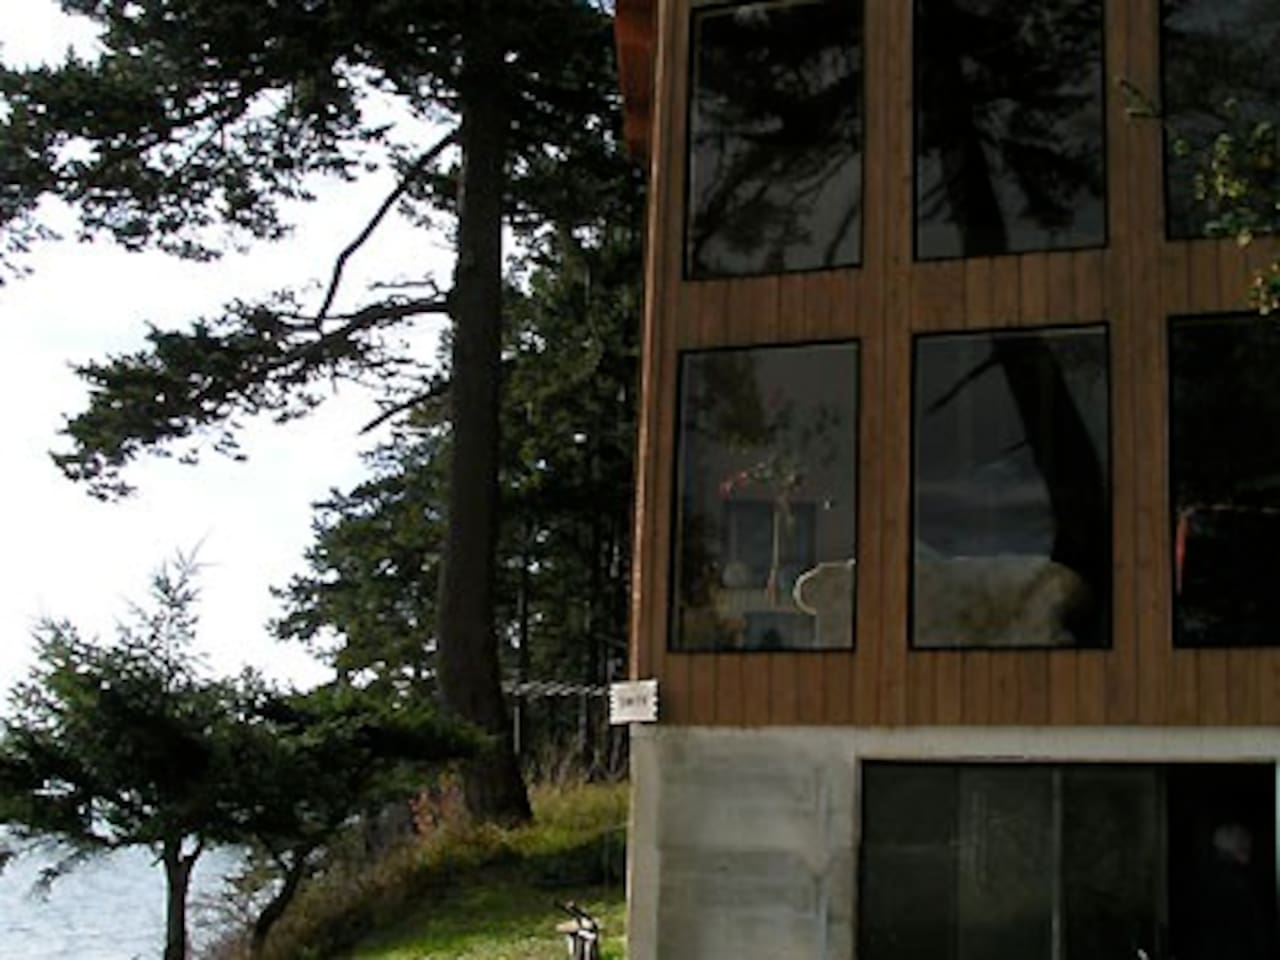 Lummi Island Home Front View - Double story windows on both sides provide amazing panoramic view.